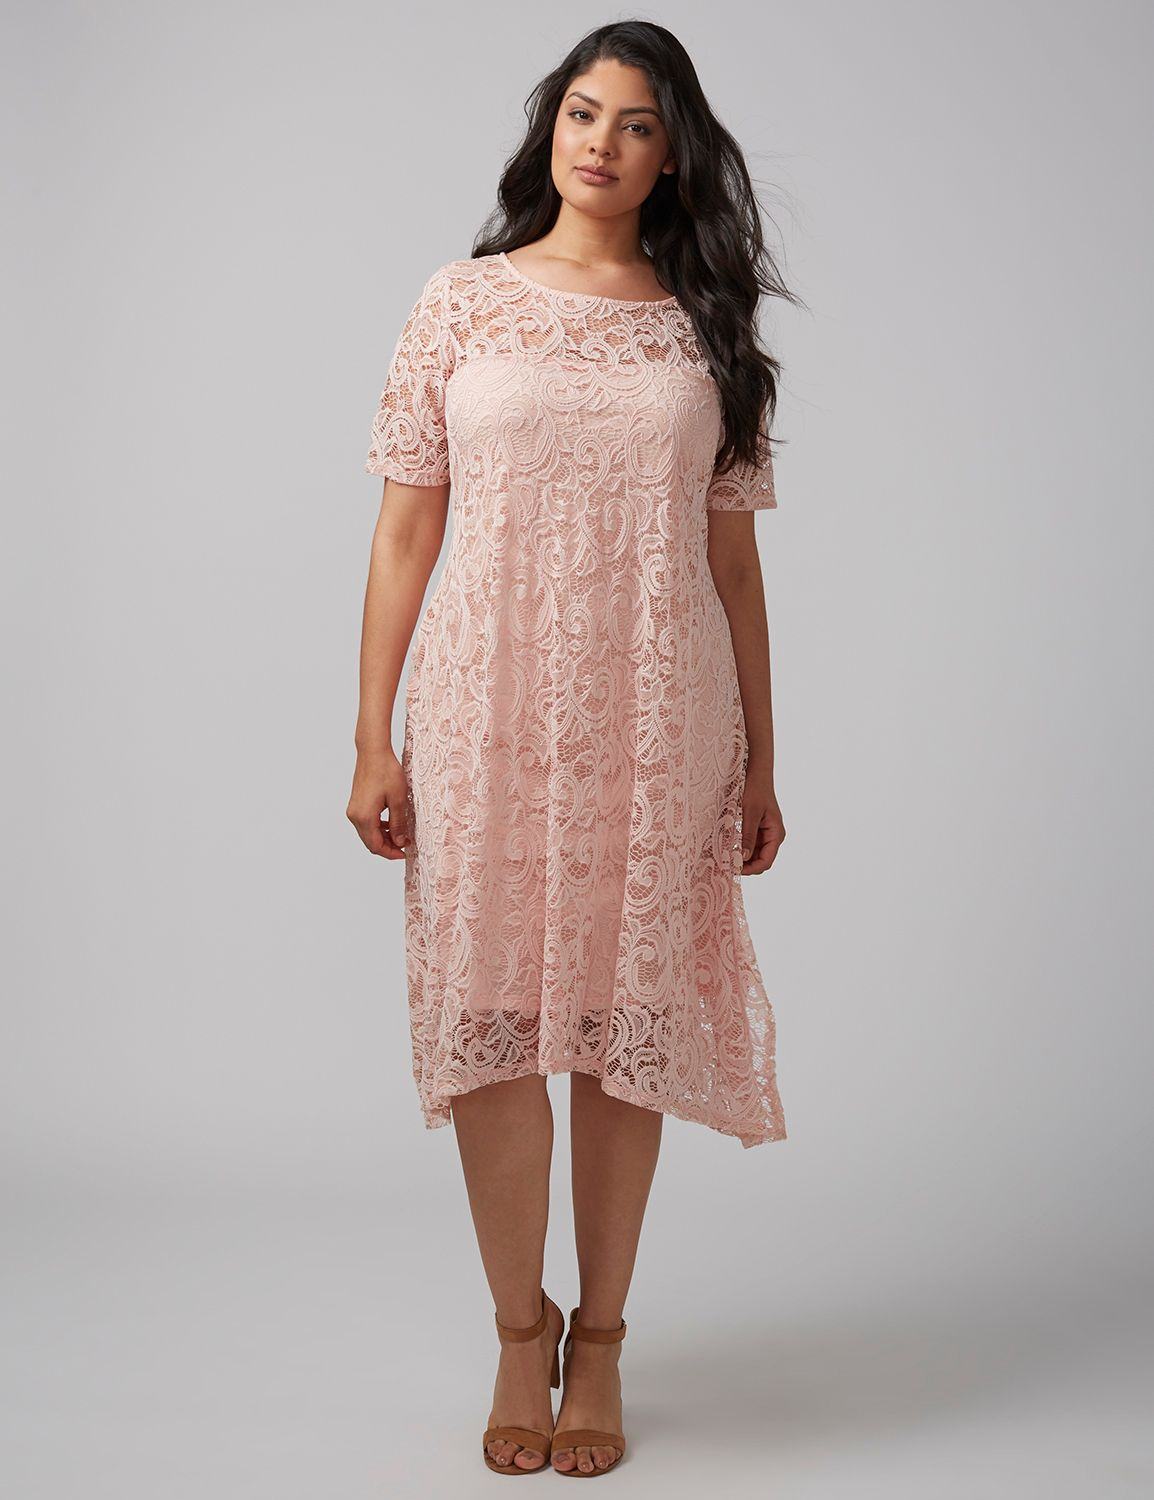 Special Occasion And Cocktail Dresses